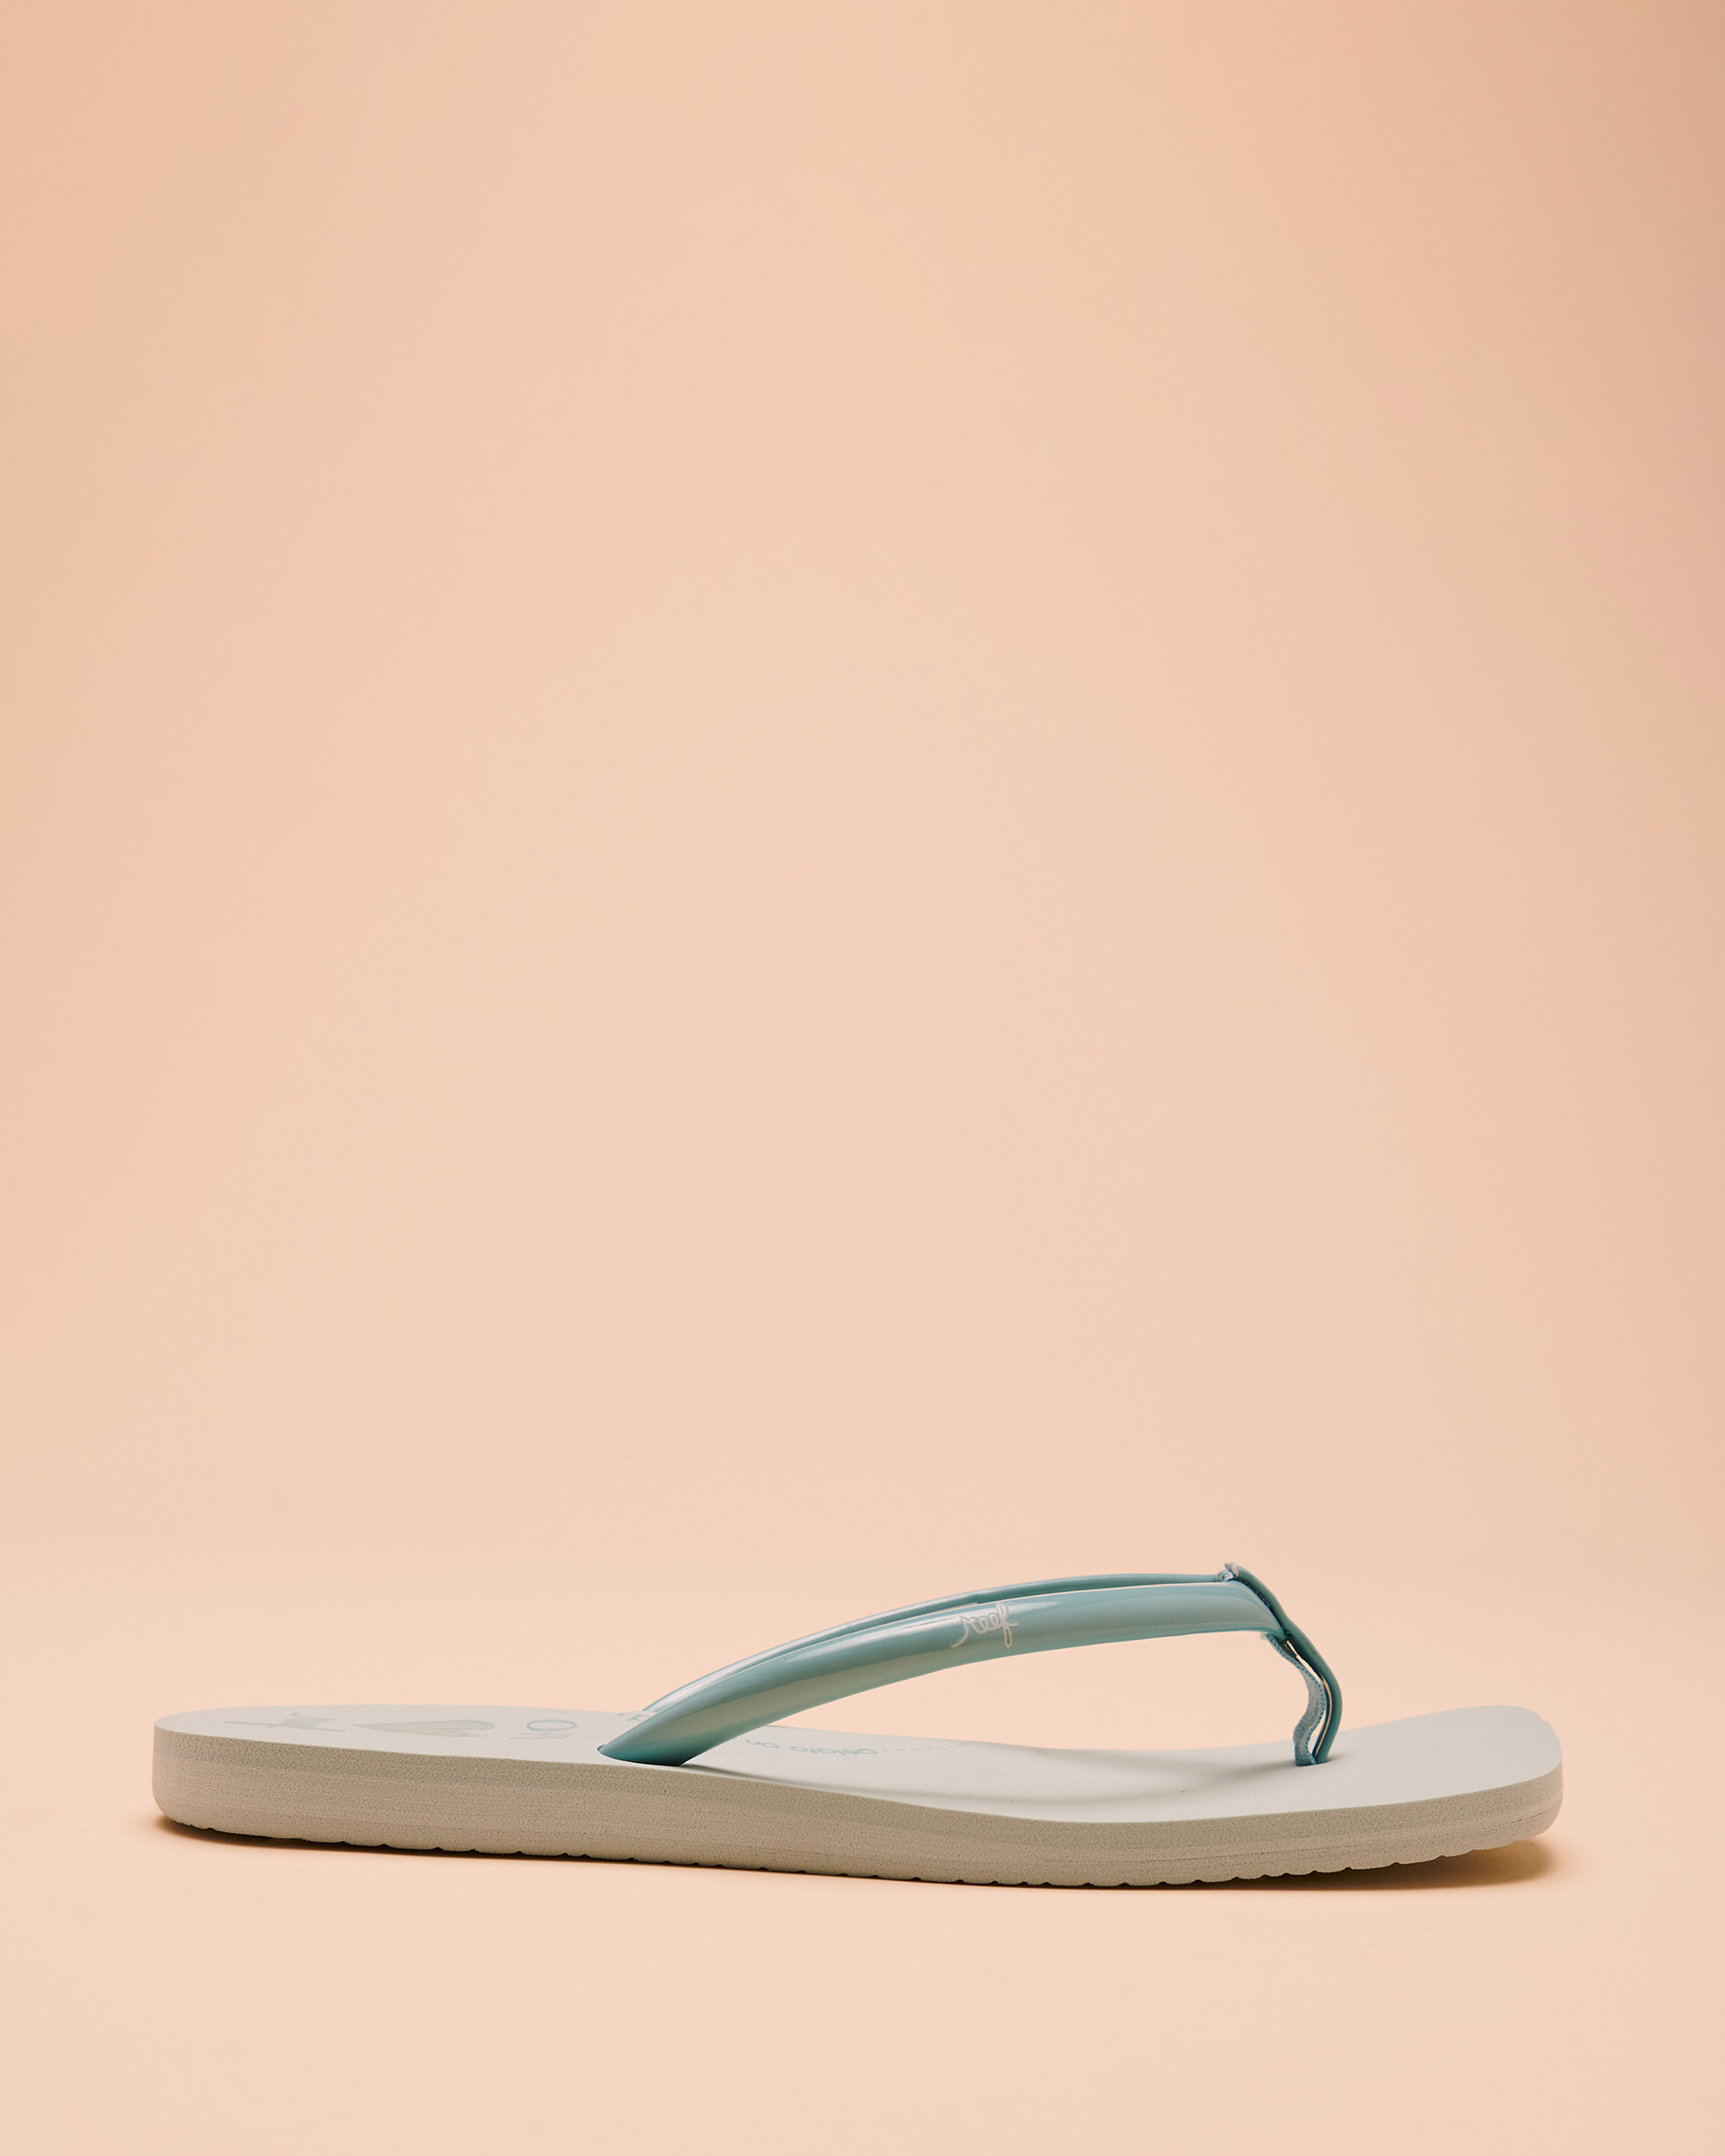 REEF SEAS X OPI Sandals Baby blue CI4873 - View2